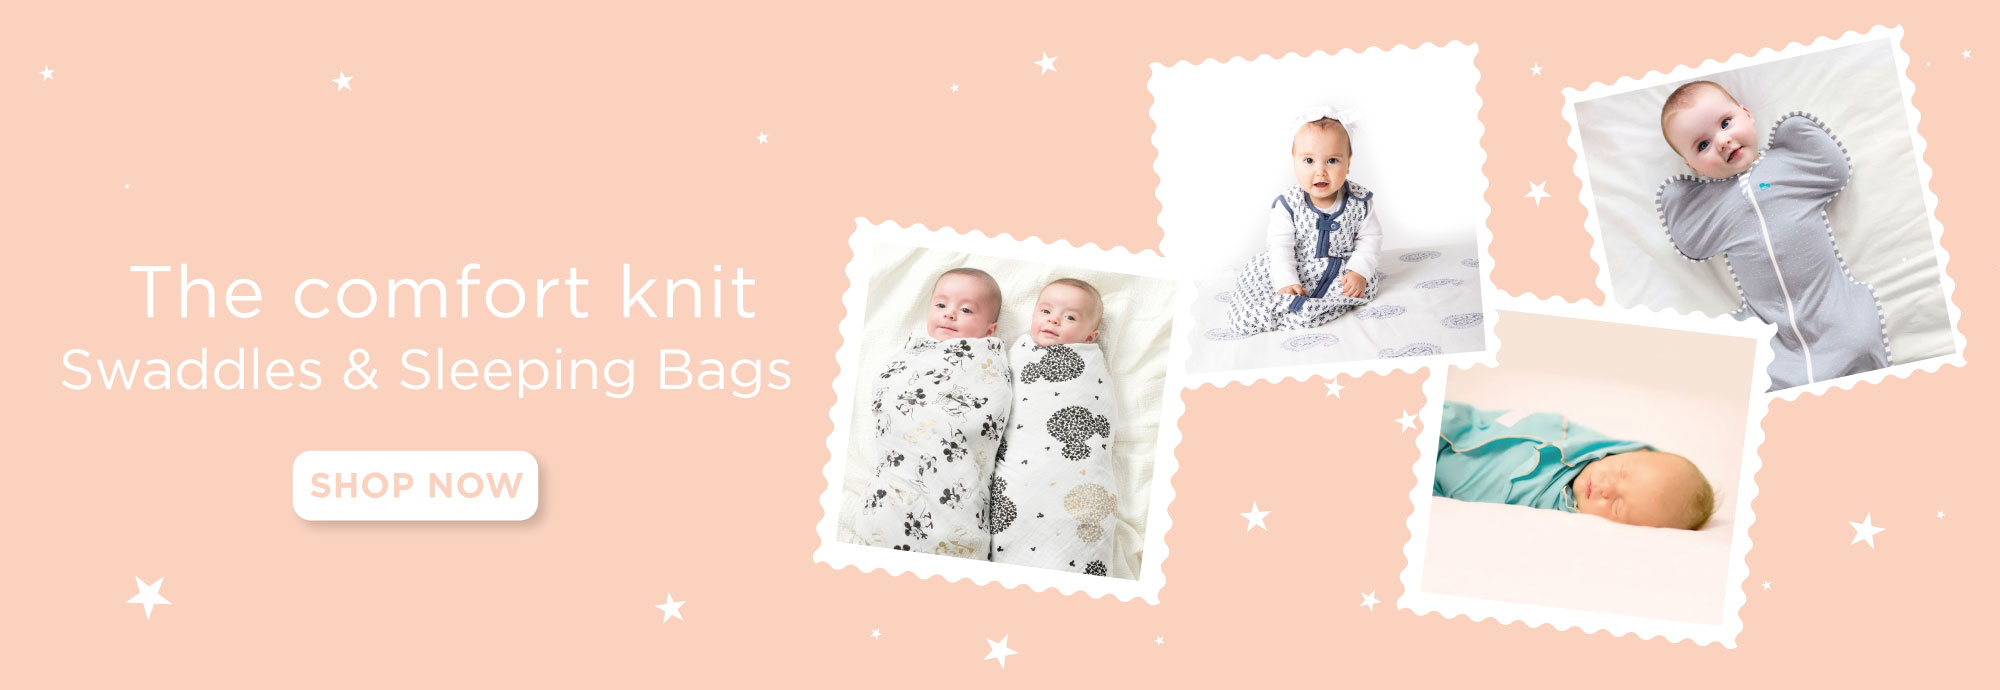 Swaddles-and-baby-sleeping-bags-web-3